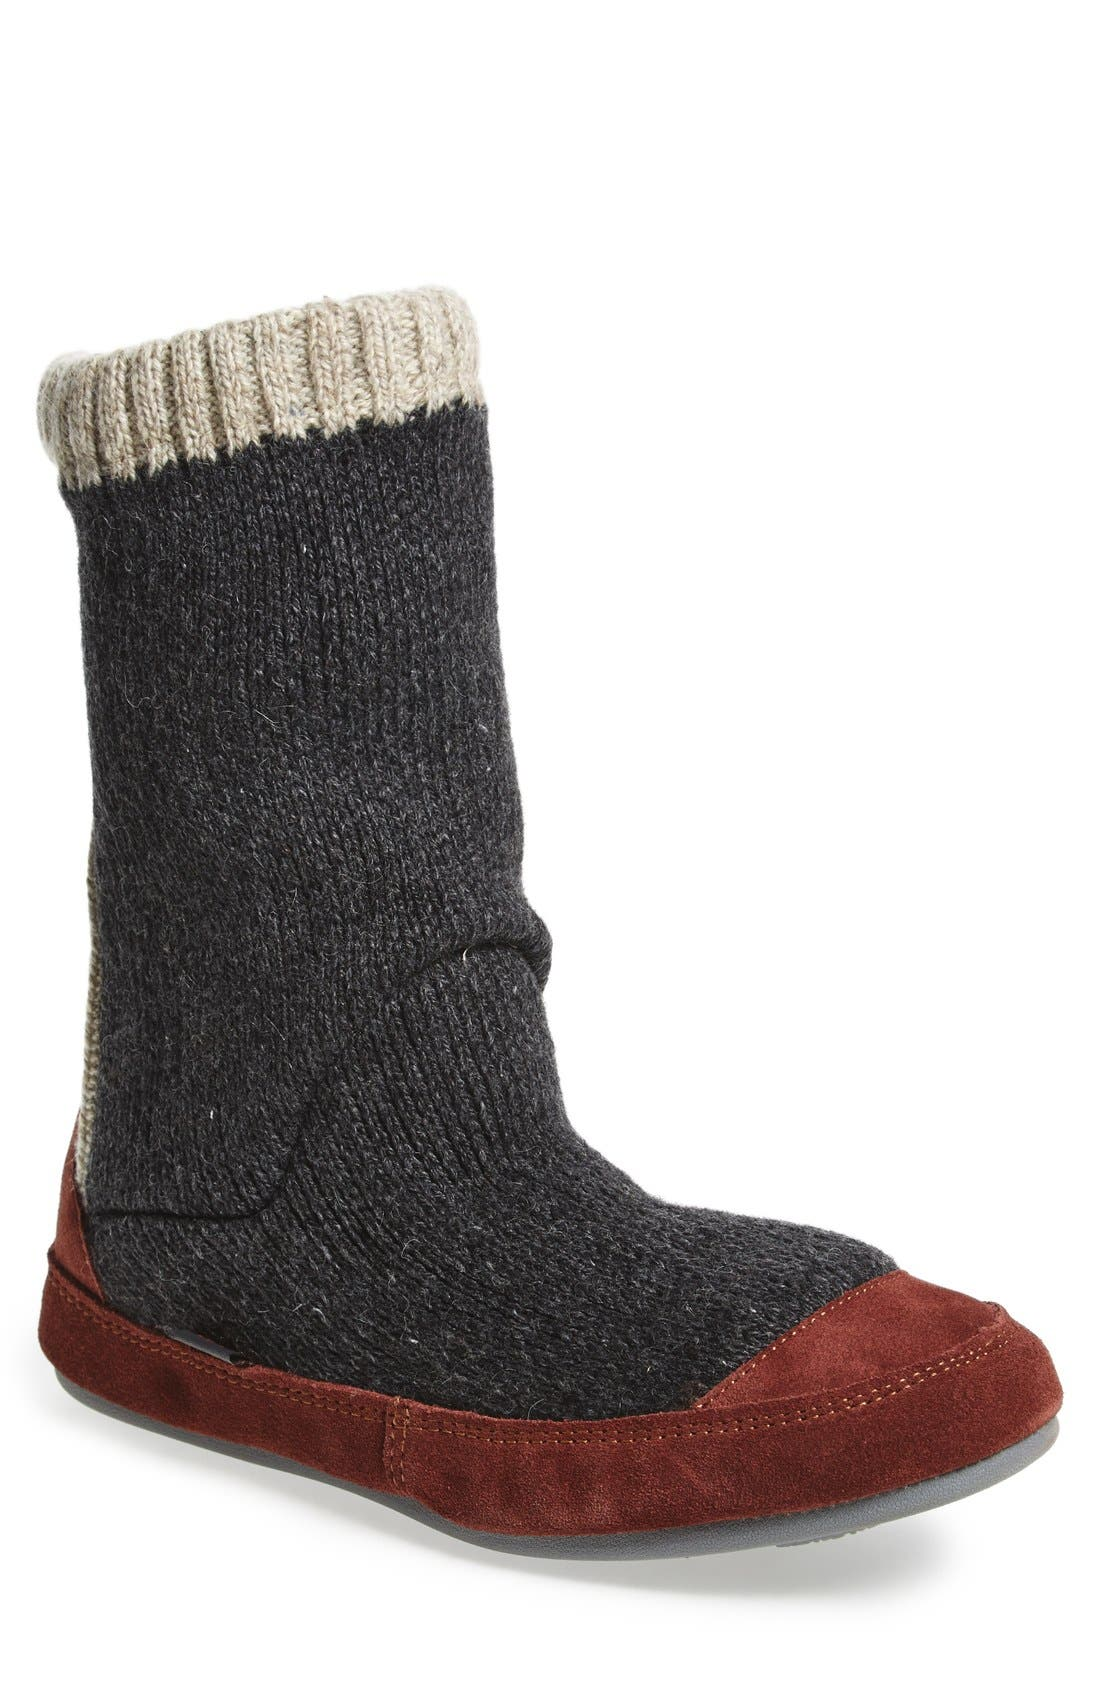 'Slouch Boot' Slipper,                         Main,                         color,